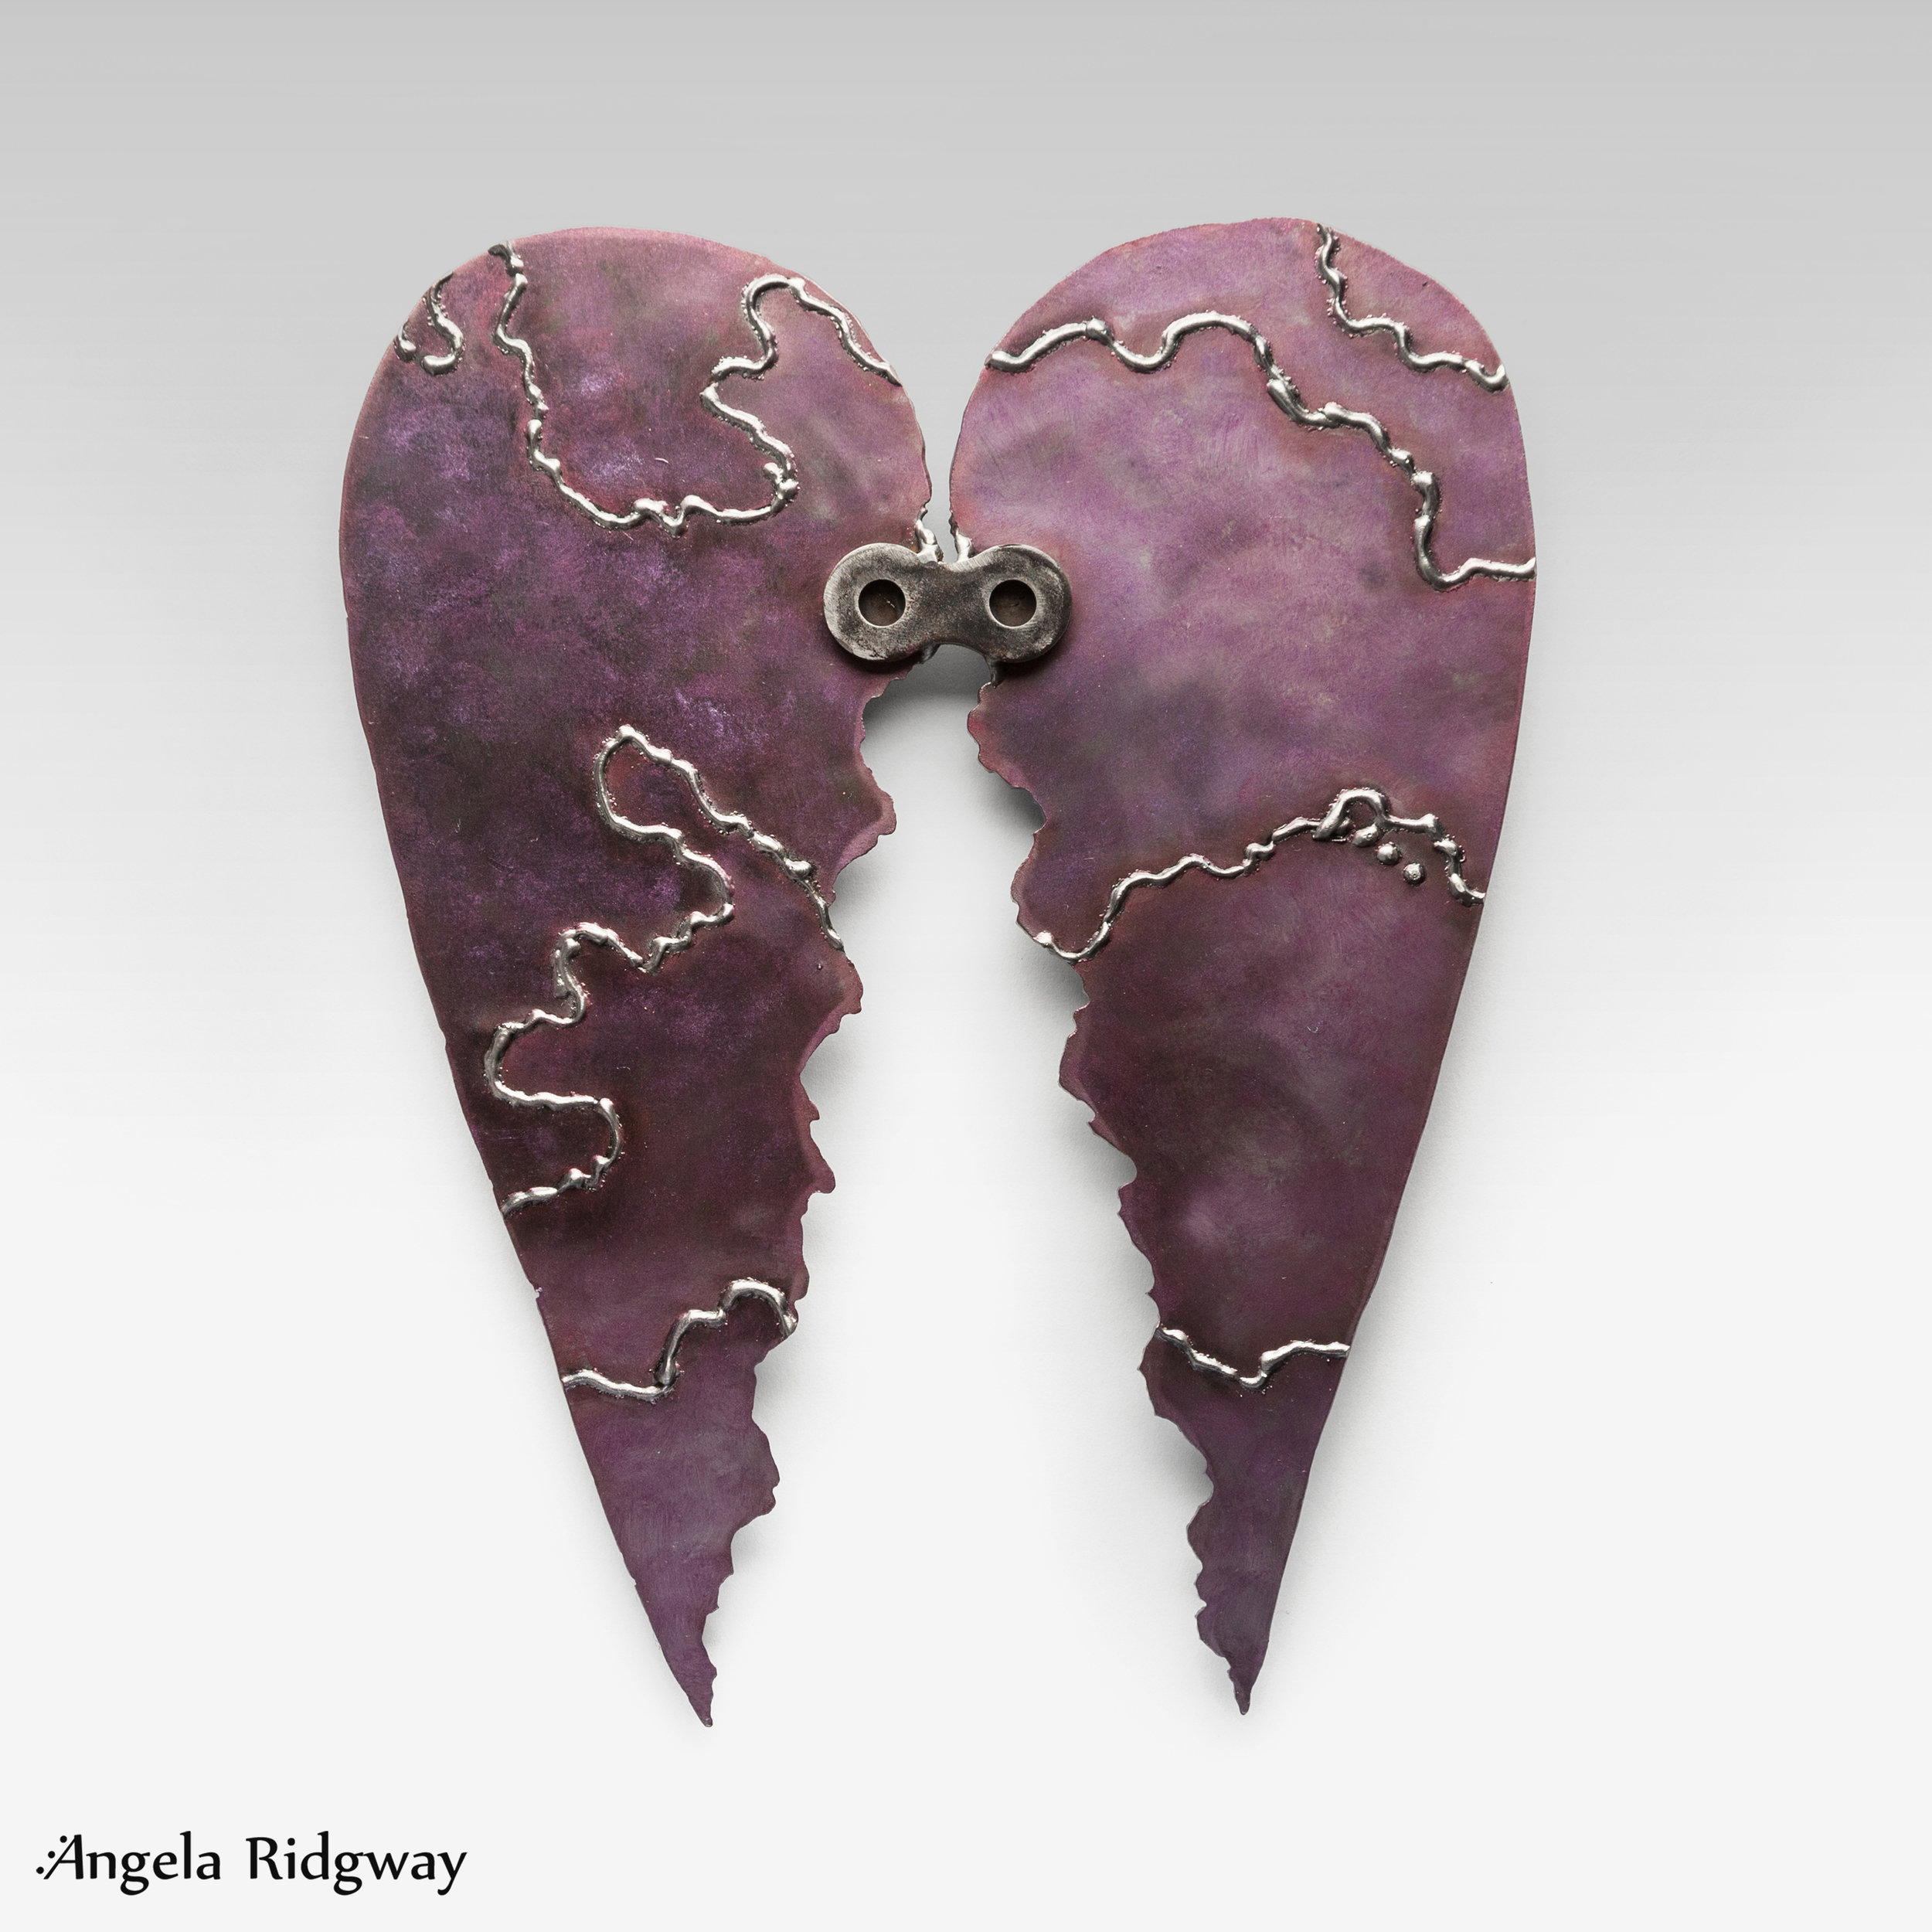 turn your broken heart into wings … and fly (1)